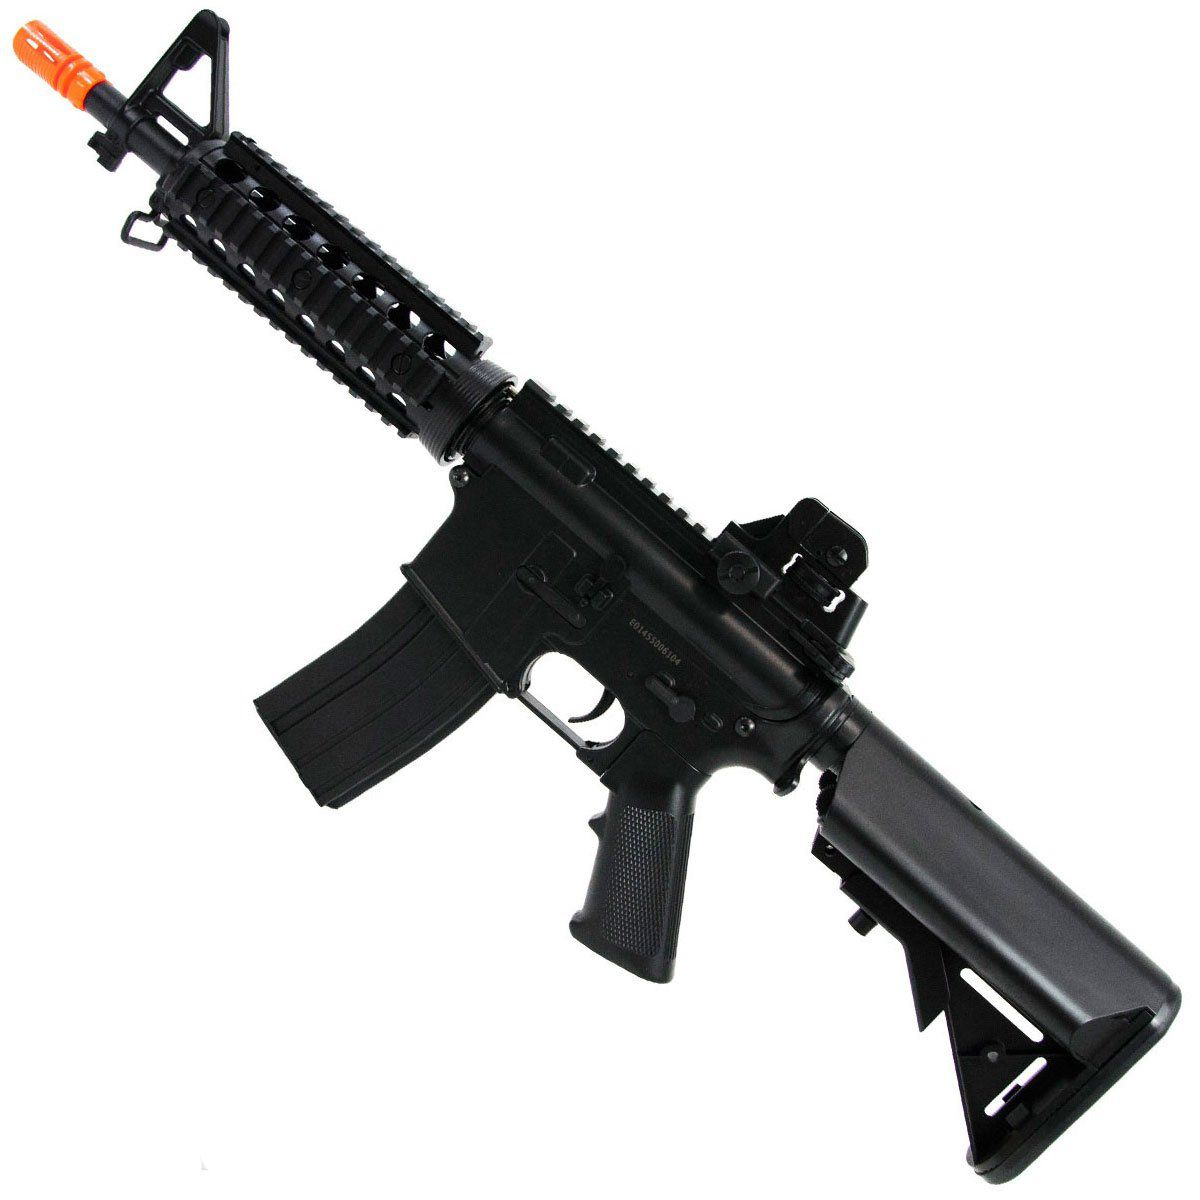 Rifle Airsoft Cyma M4A1 CQB RIS CM506 Elétrico - 6mm